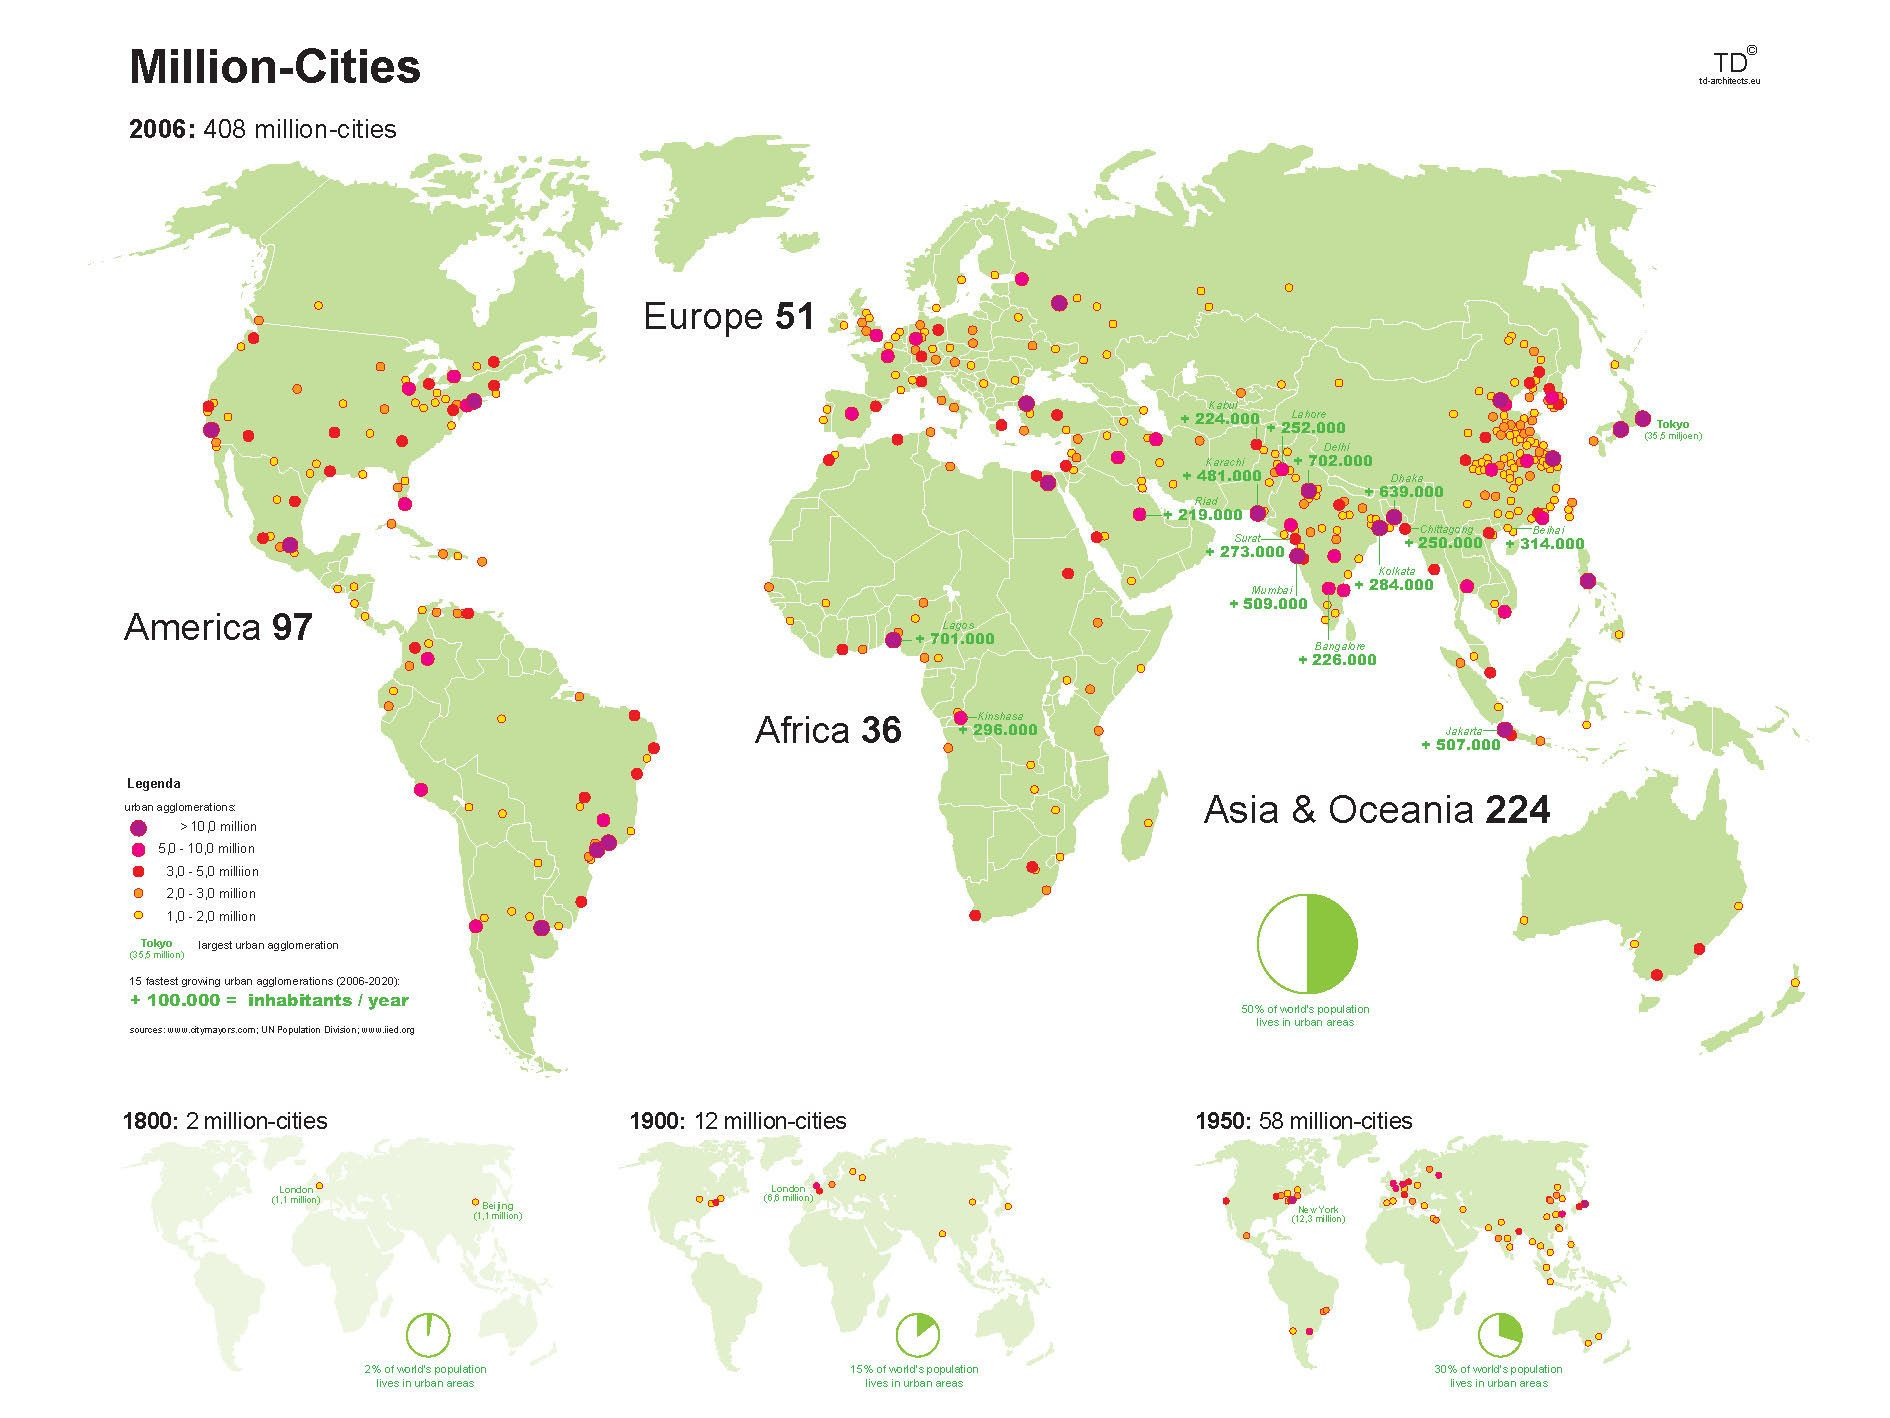 Maps showing cities with populations over 1 million over